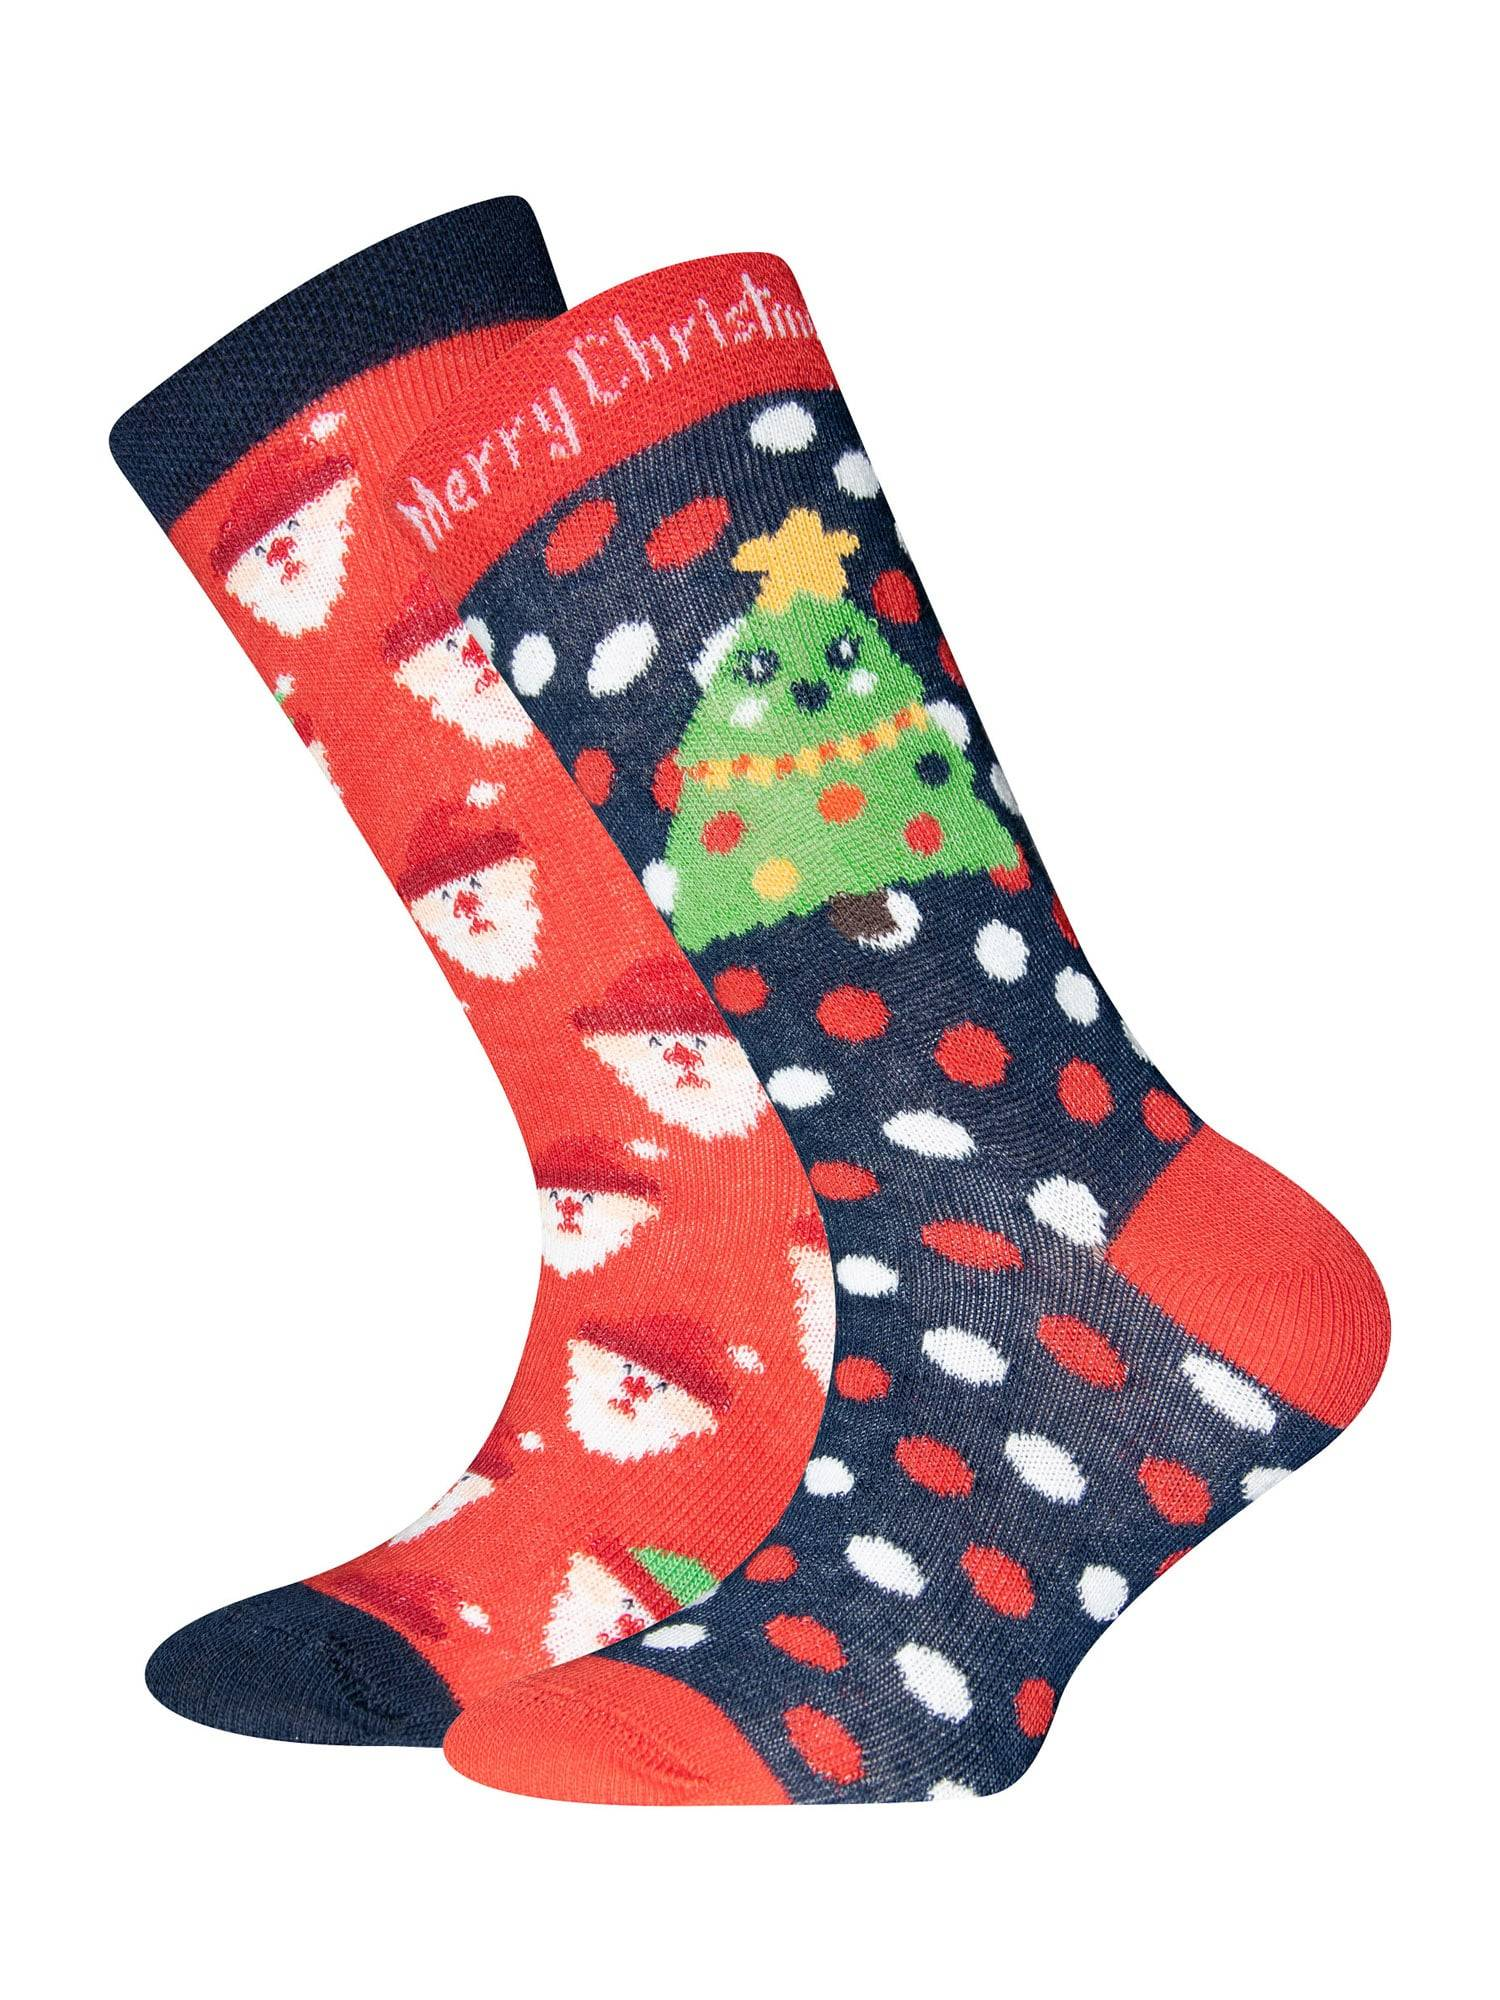 EWERS Chaussettes  - Bleu, Rouge - Taille: 31-34 - boy